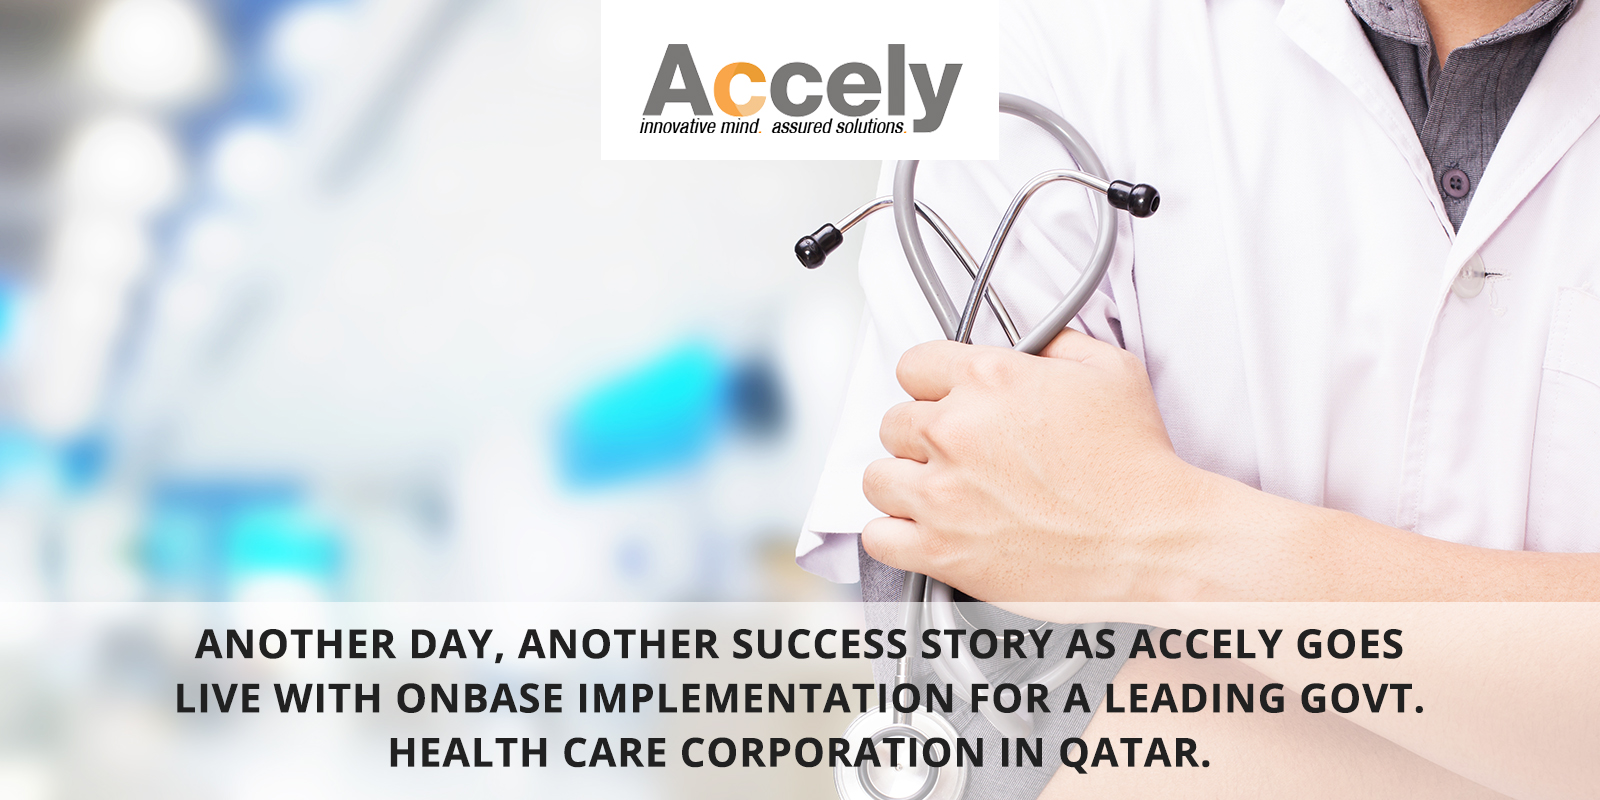 OnBase implementation for a leading Govt. Health Care Corporation in Qatar